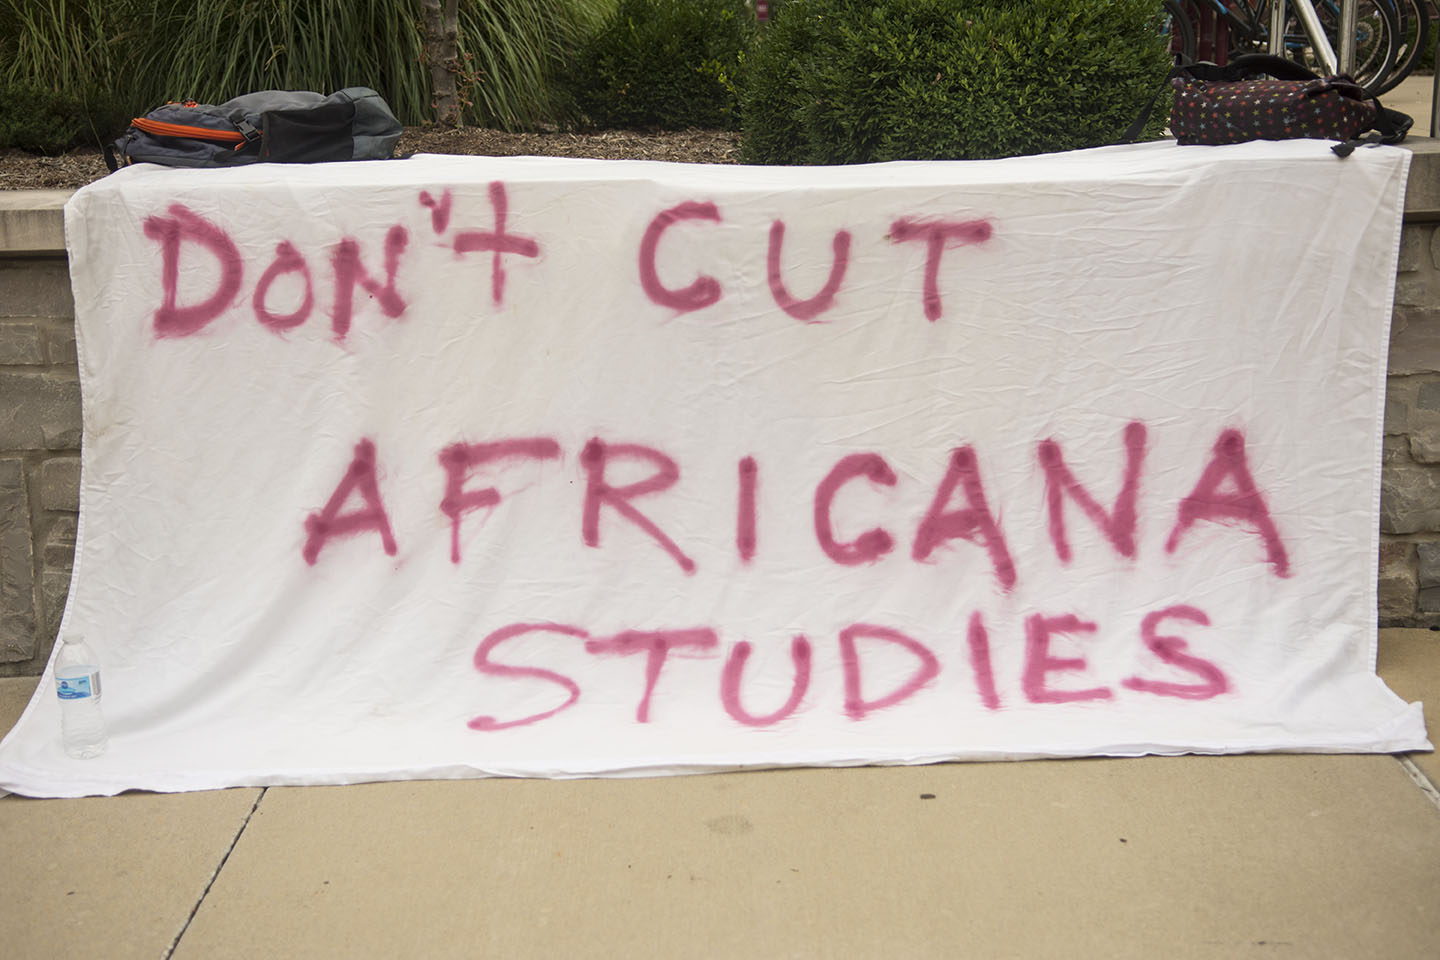 A+banner+stating+%22don%27t+cut+Africana+Studies%22+sits+outside+the+Student+Center+Tuesday%2C+Aug.+22%2C+2017.+Students+and+alumni+gathered+outside+the+Student+Center+to+protest+the+removal+of+the+Africana+Studies+program+from+SIU.+Athena+Chrysanthou+%7C+%40Chrysant1Athena%29